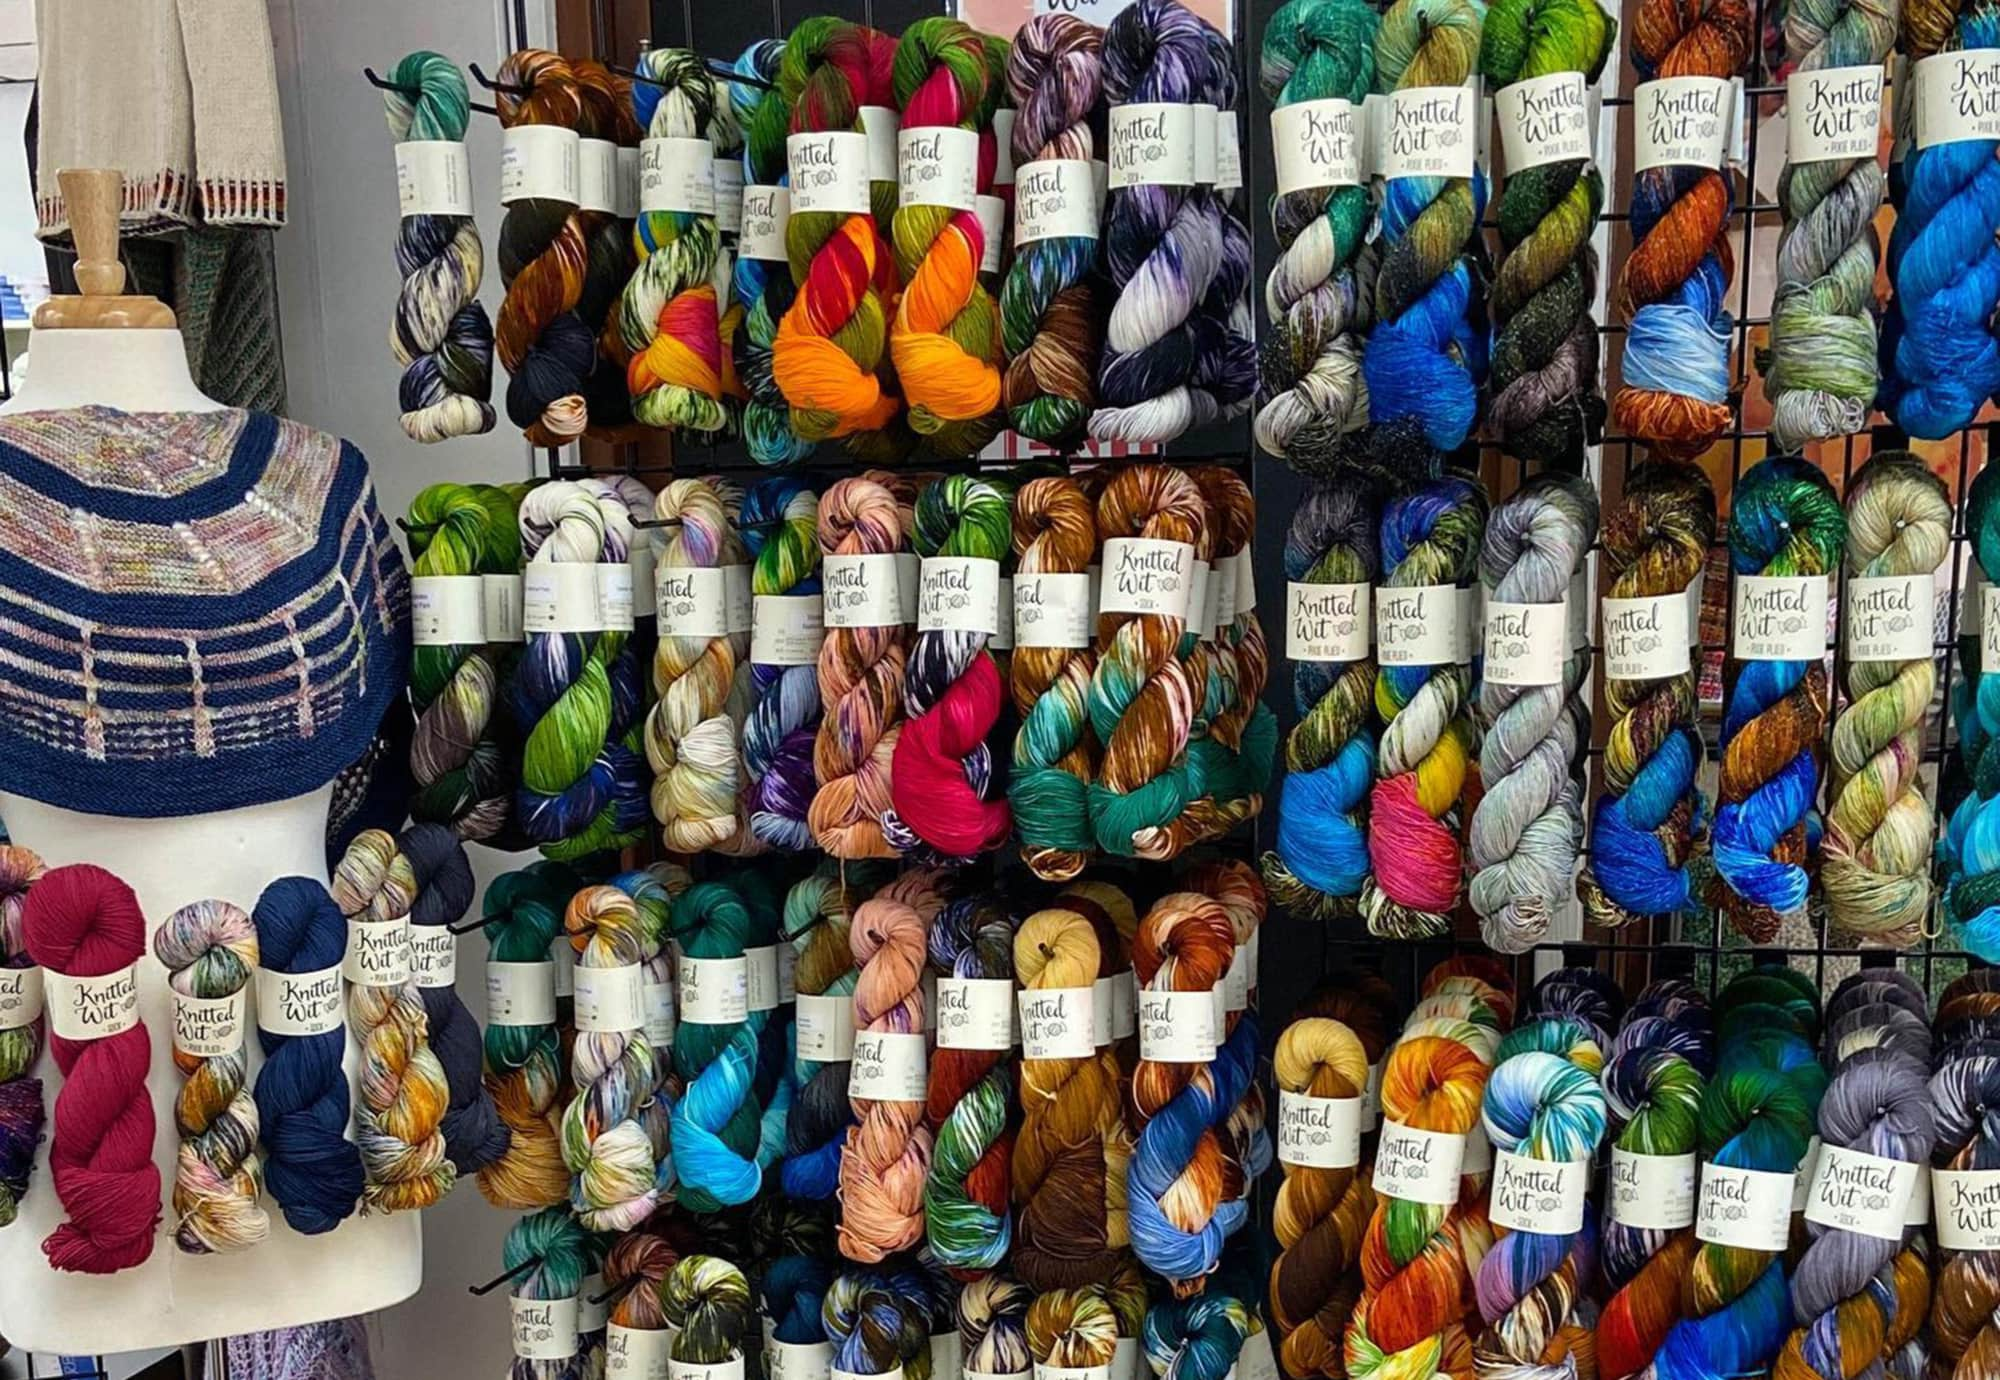 wall of colorful twisted yarn bundles at Four Purls Yarn Shop in Winter Haven, FL